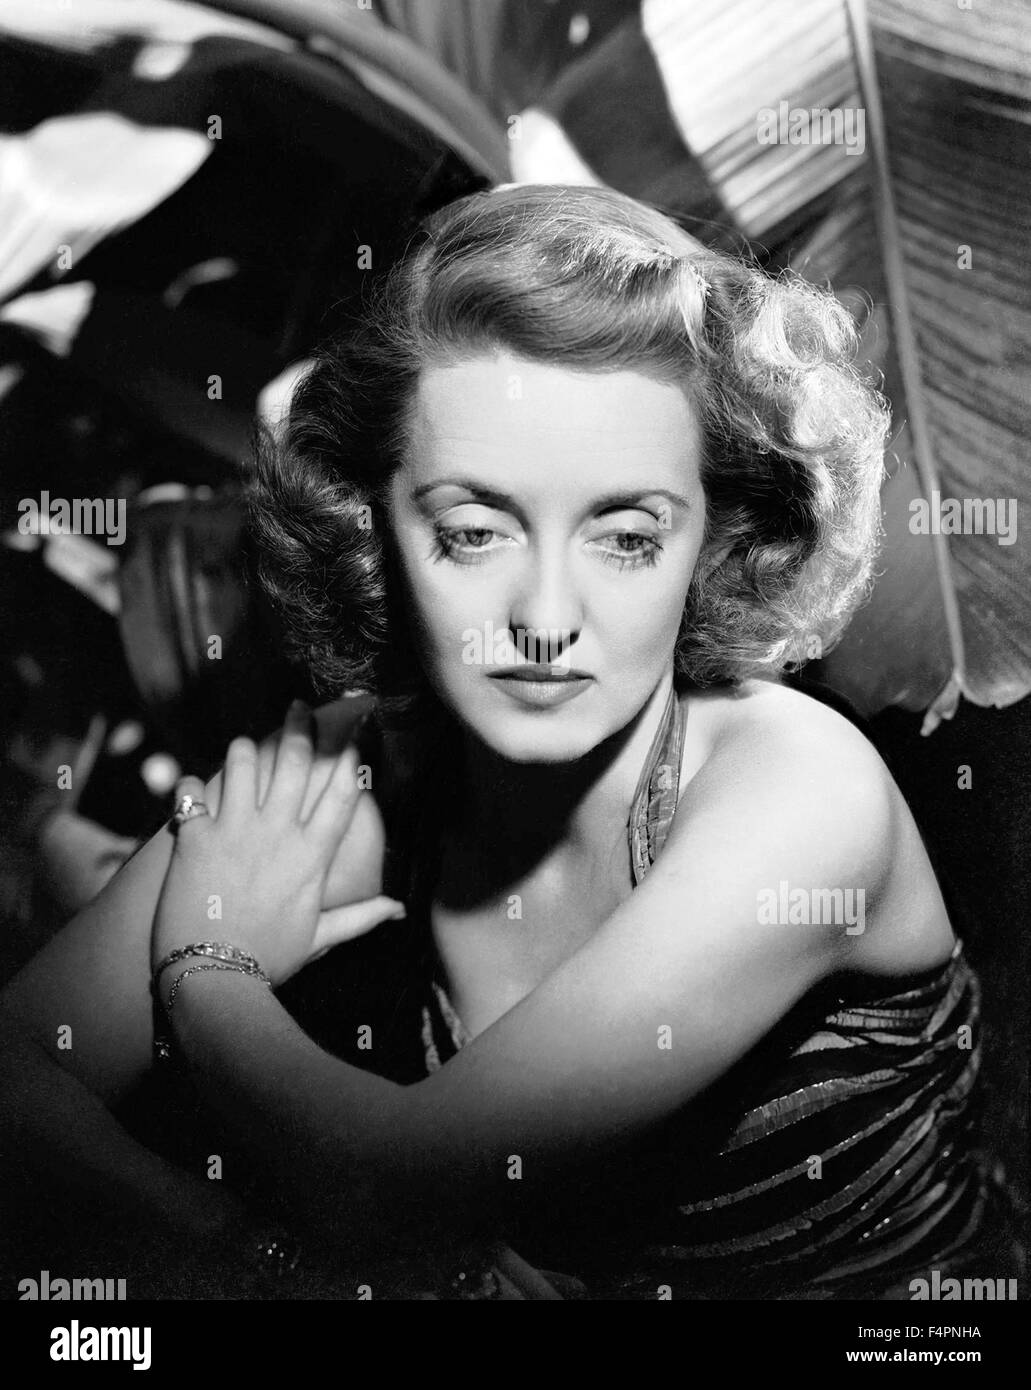 Bette Davis in the 30's - Stock Image